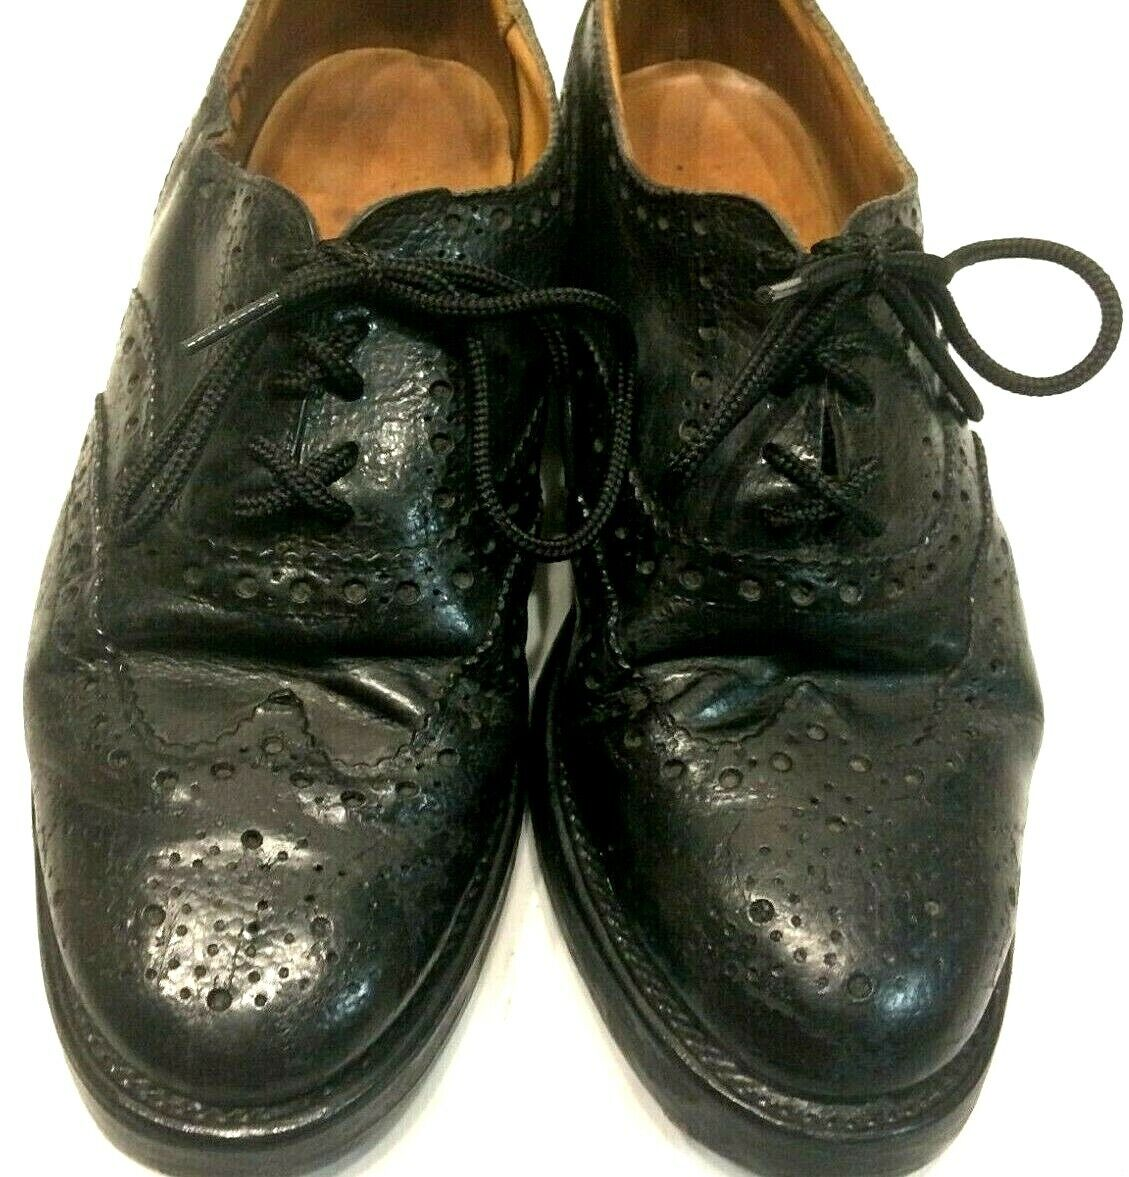 Genuine Scottish Highland Brogues Piper shoes, Grade one Size 7s Double tapped